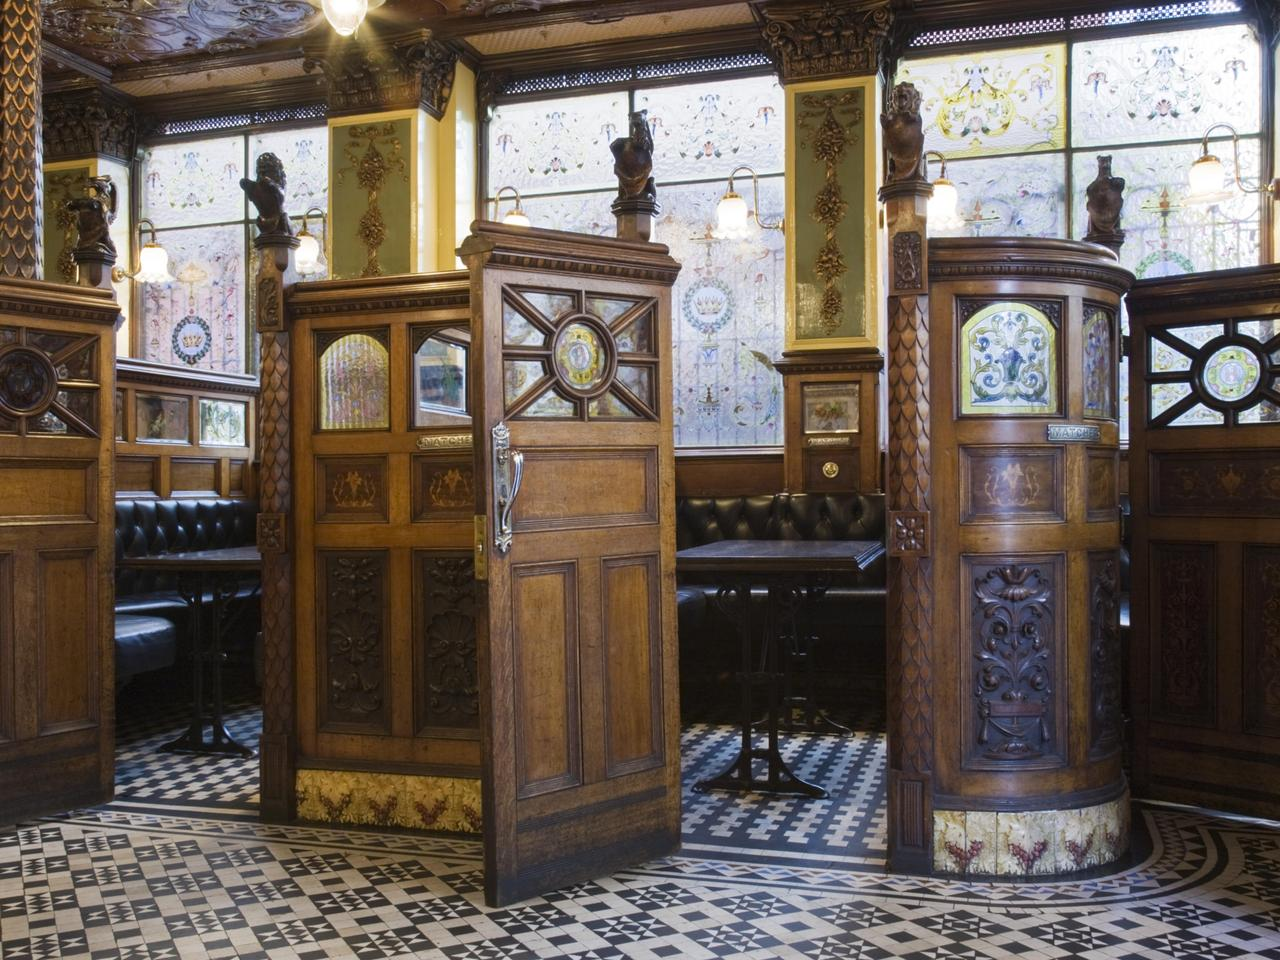 The wooden snugs at The Crown Bar, Great Victoria Street, Belfast. Formerly known as the Crown Liquor Saloon, the pub building dates from 1826 but the wonderful late Victorian craftsmanship of the tiling, glass and woodwork undertaken by Italian workers d